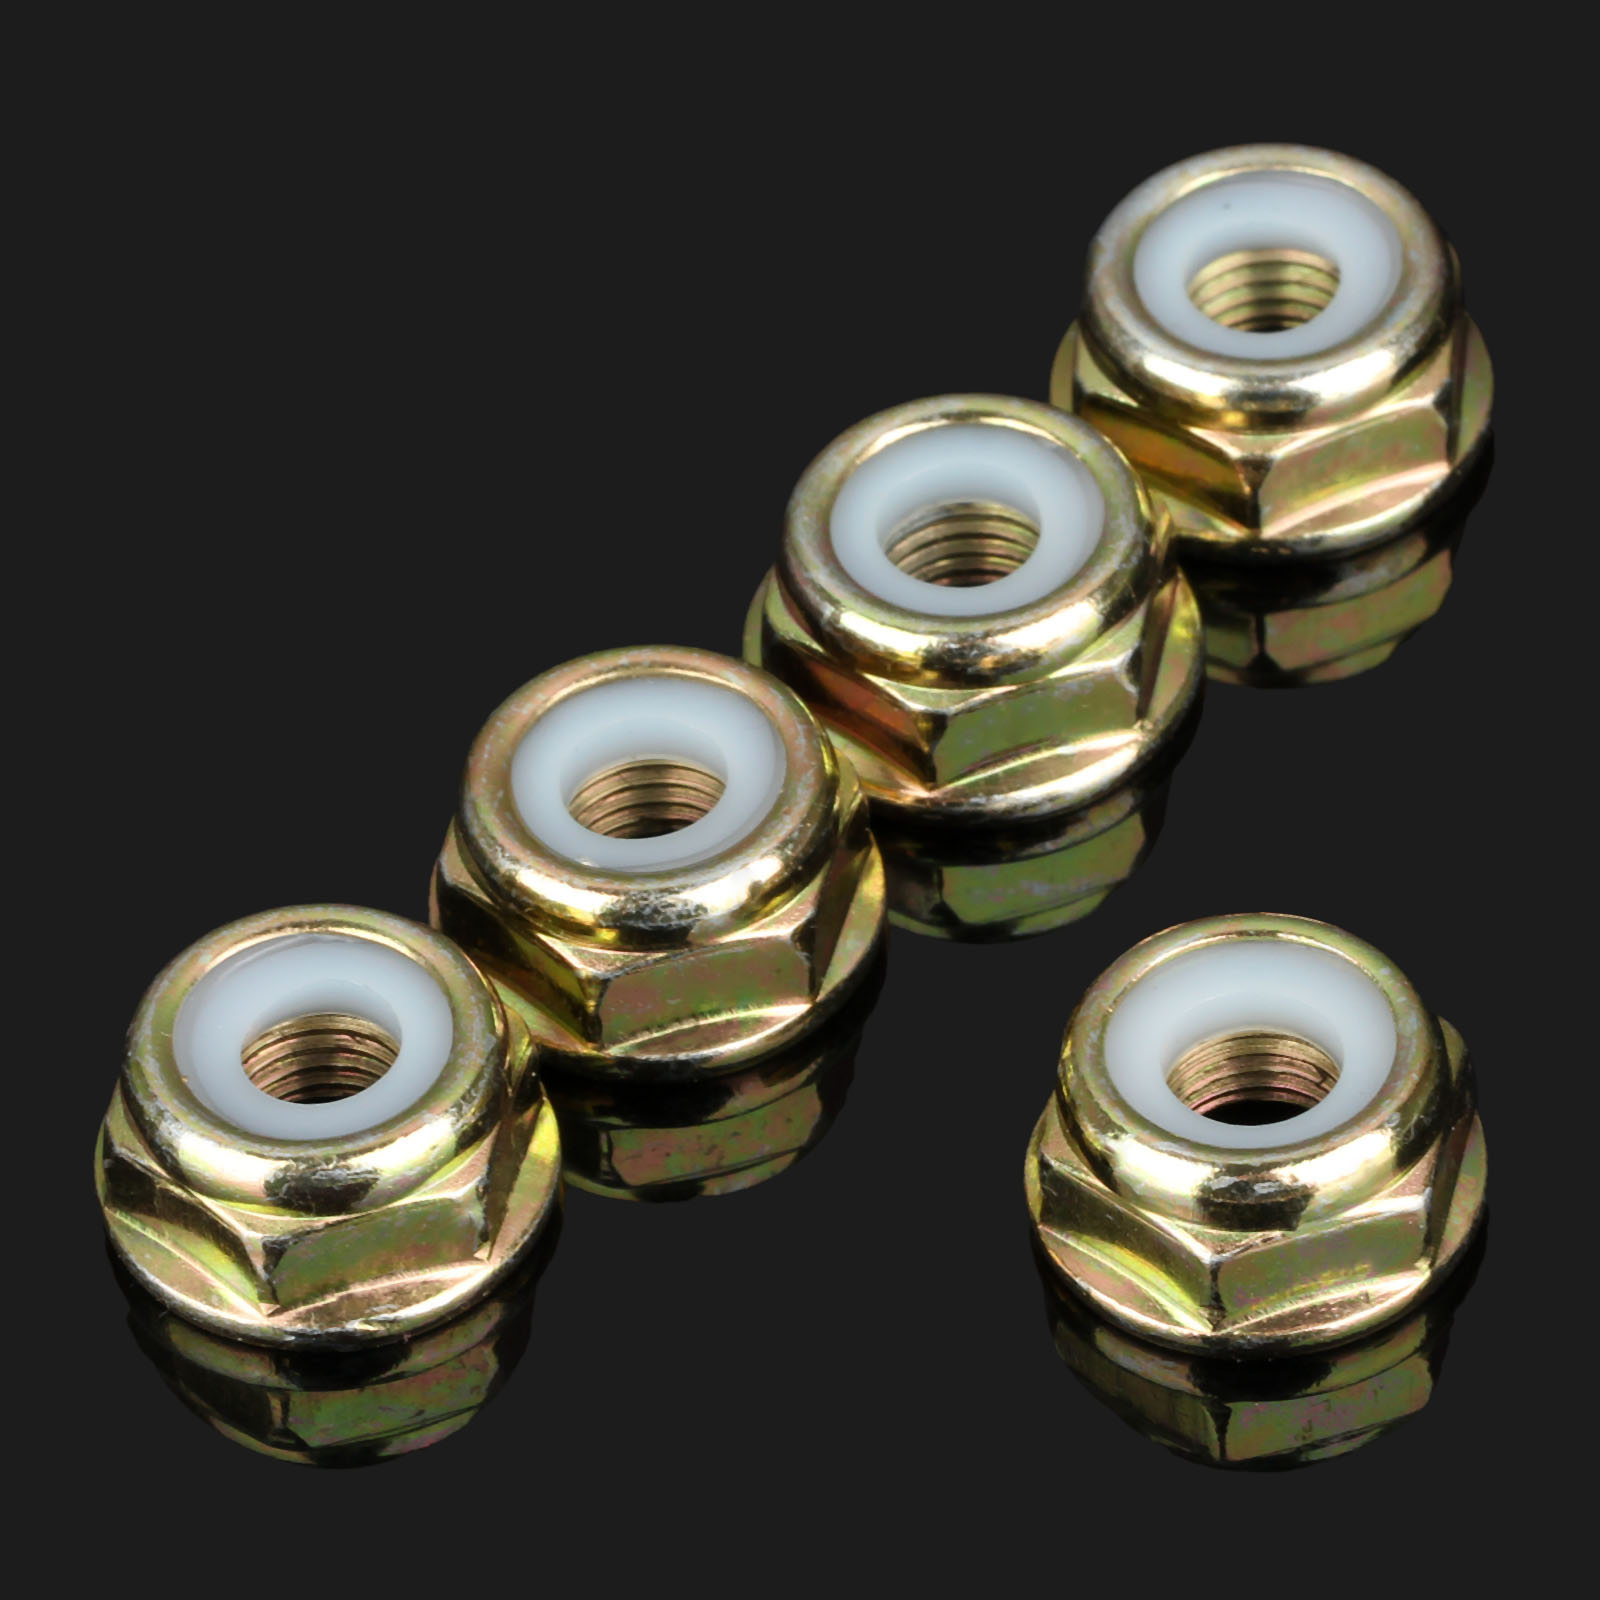 5Pcs Garden Tool Parts String Trimmer Parts Brush Cutter Gear Head Case Nut M10*1.25 Blade Nuts  Gear Head For Brush Cutters